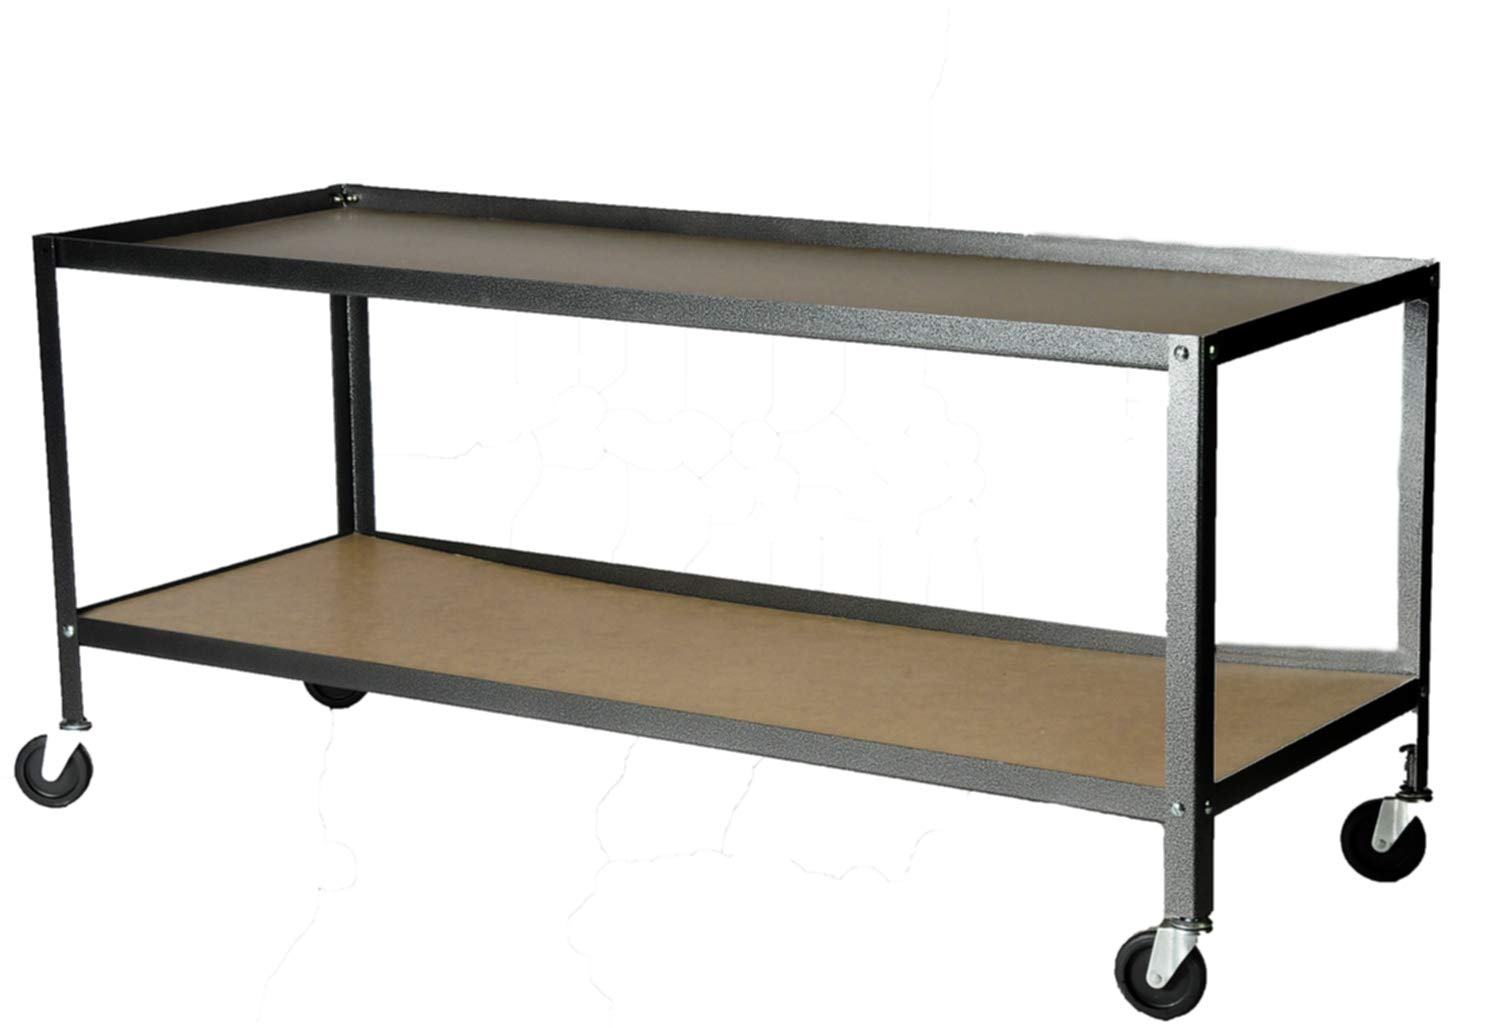 American Educational Plastic Hydro Geology Stream Table with Cart and Accessories, 66'' Length x 26'' Width x 6'' Depth by American Educational Products (Image #2)